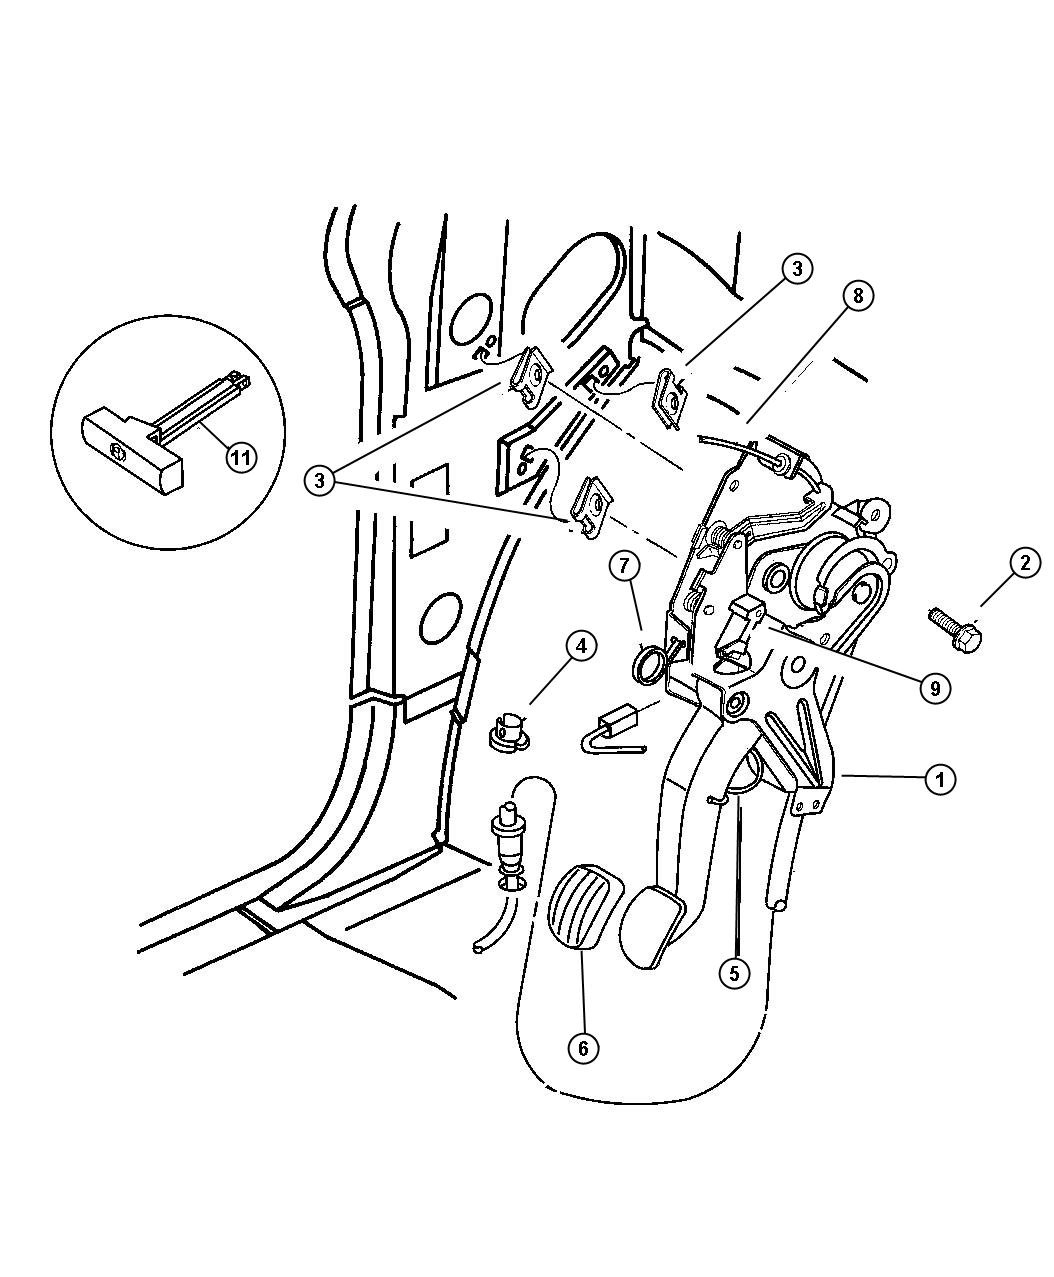 Plymouth Grand Voyager Lever Parking Brake